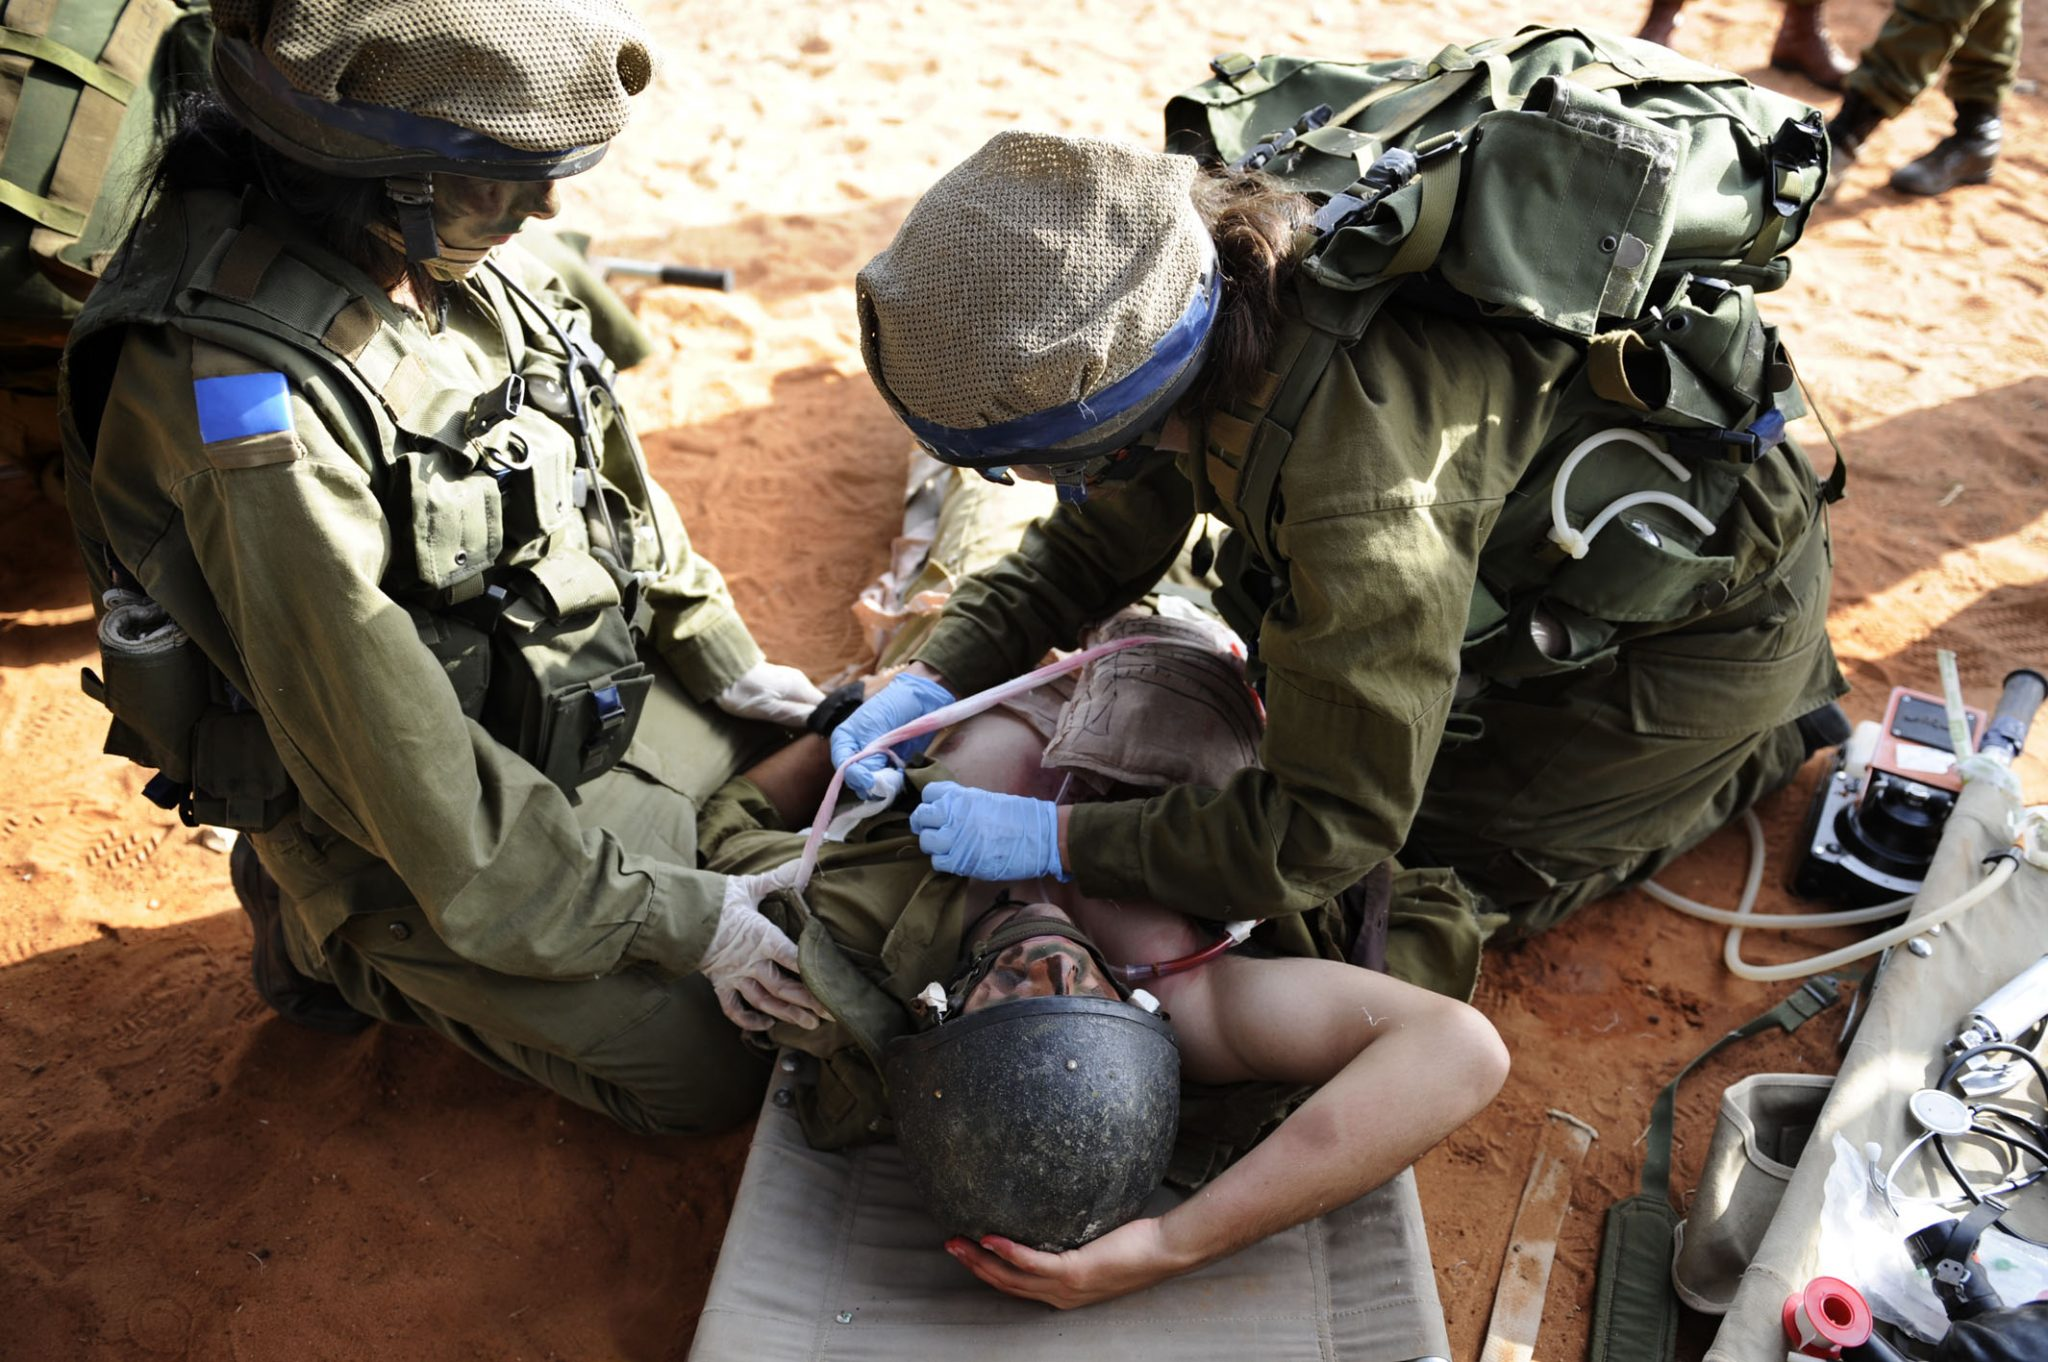 IDF smart watch for medics documents the incident and soldiers' vitals to free the medic to work